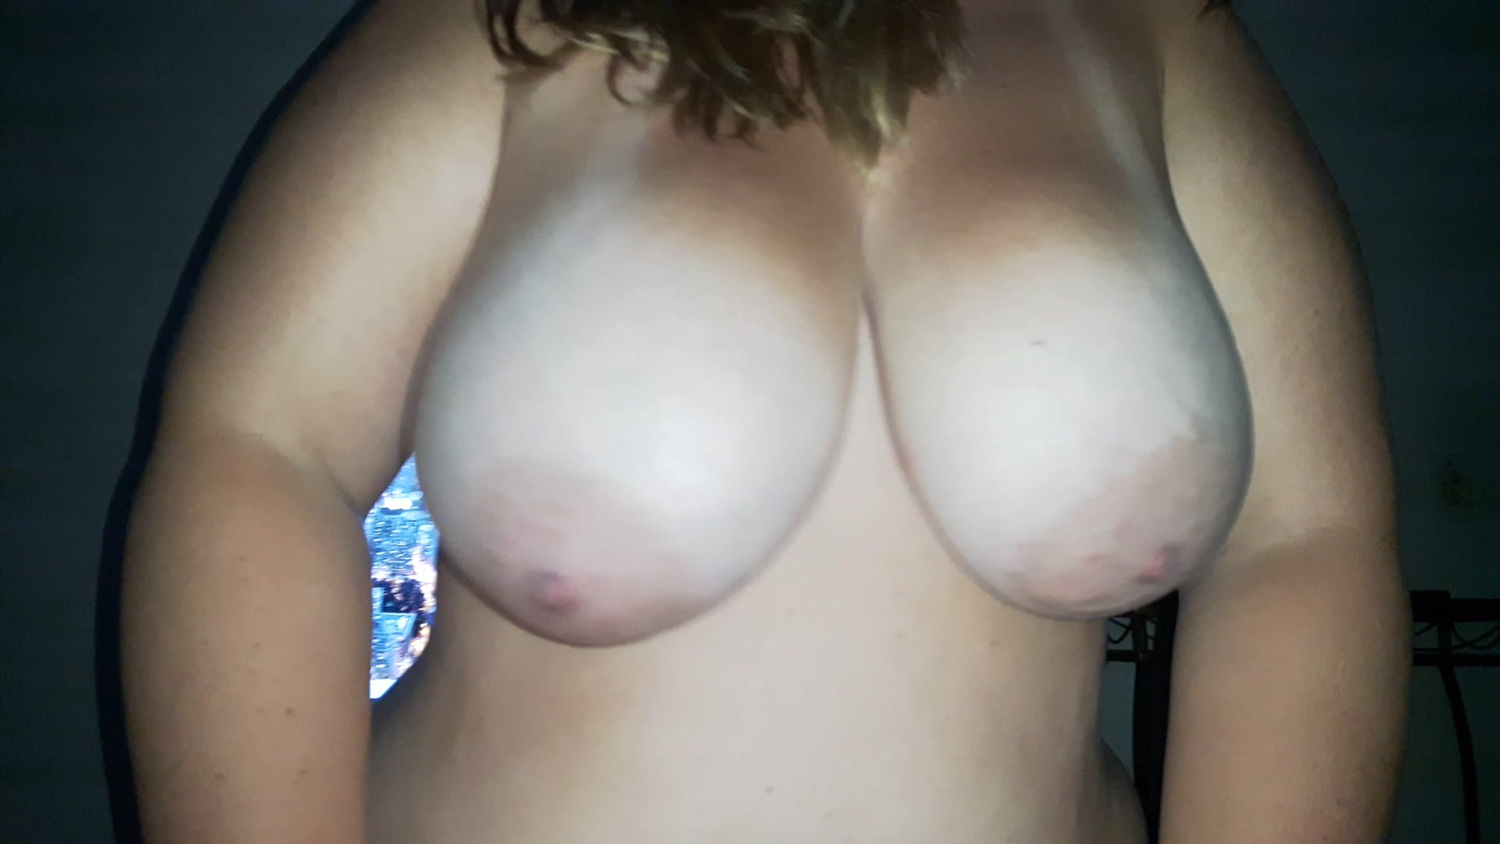 Bbw my girl big tits.